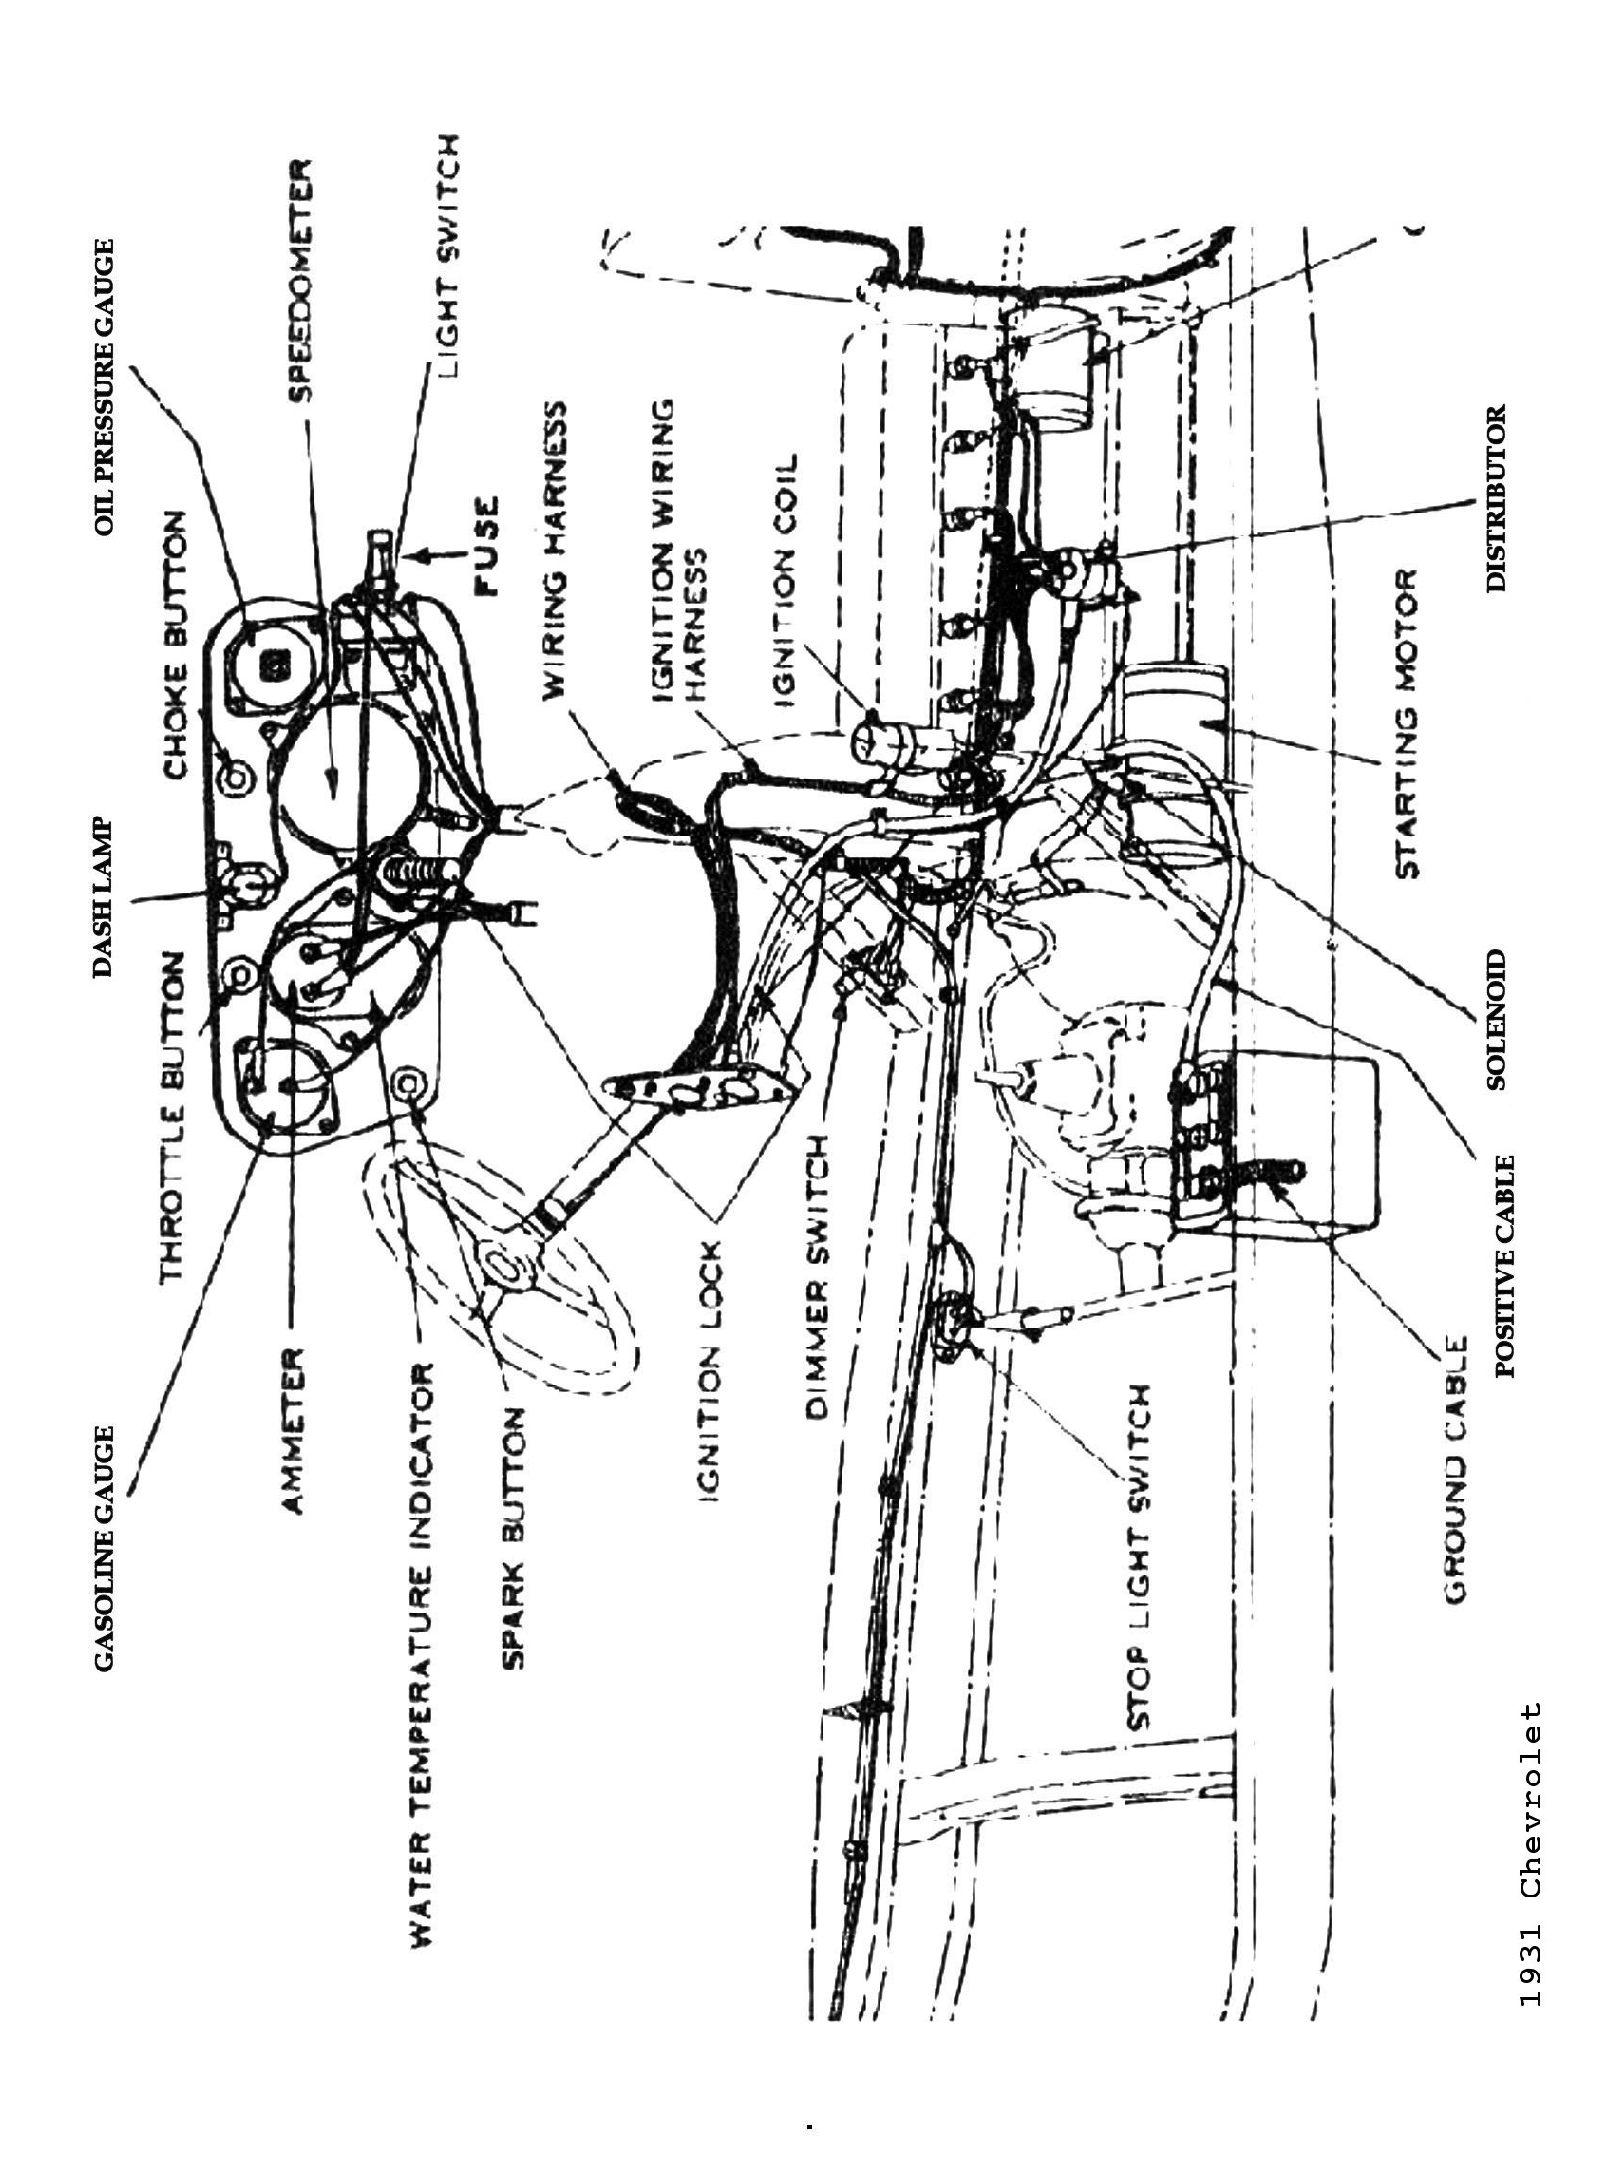 harness diagram for 1931 chevrolet